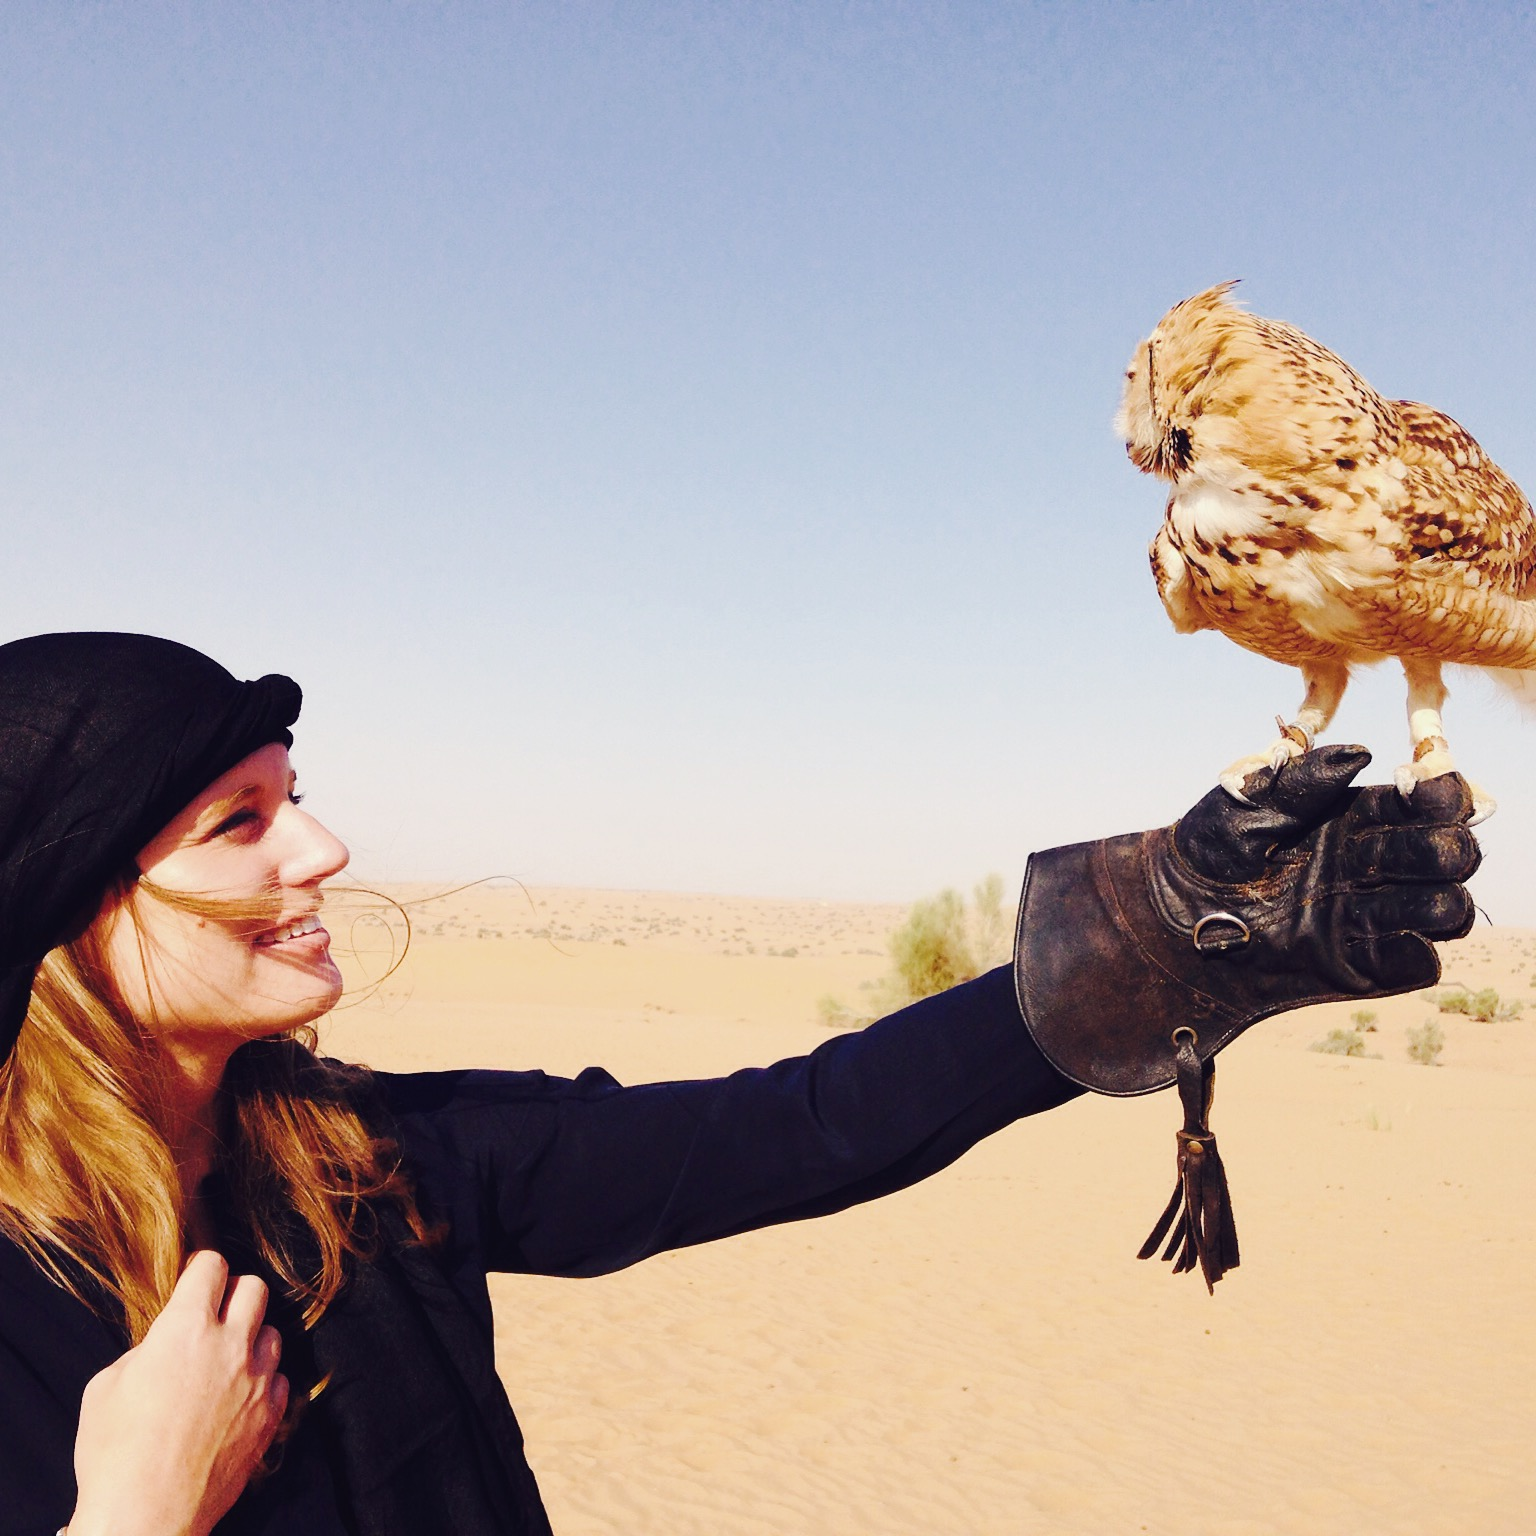 Katherine Conaway at a falconry tour in the desert outside of Dubai